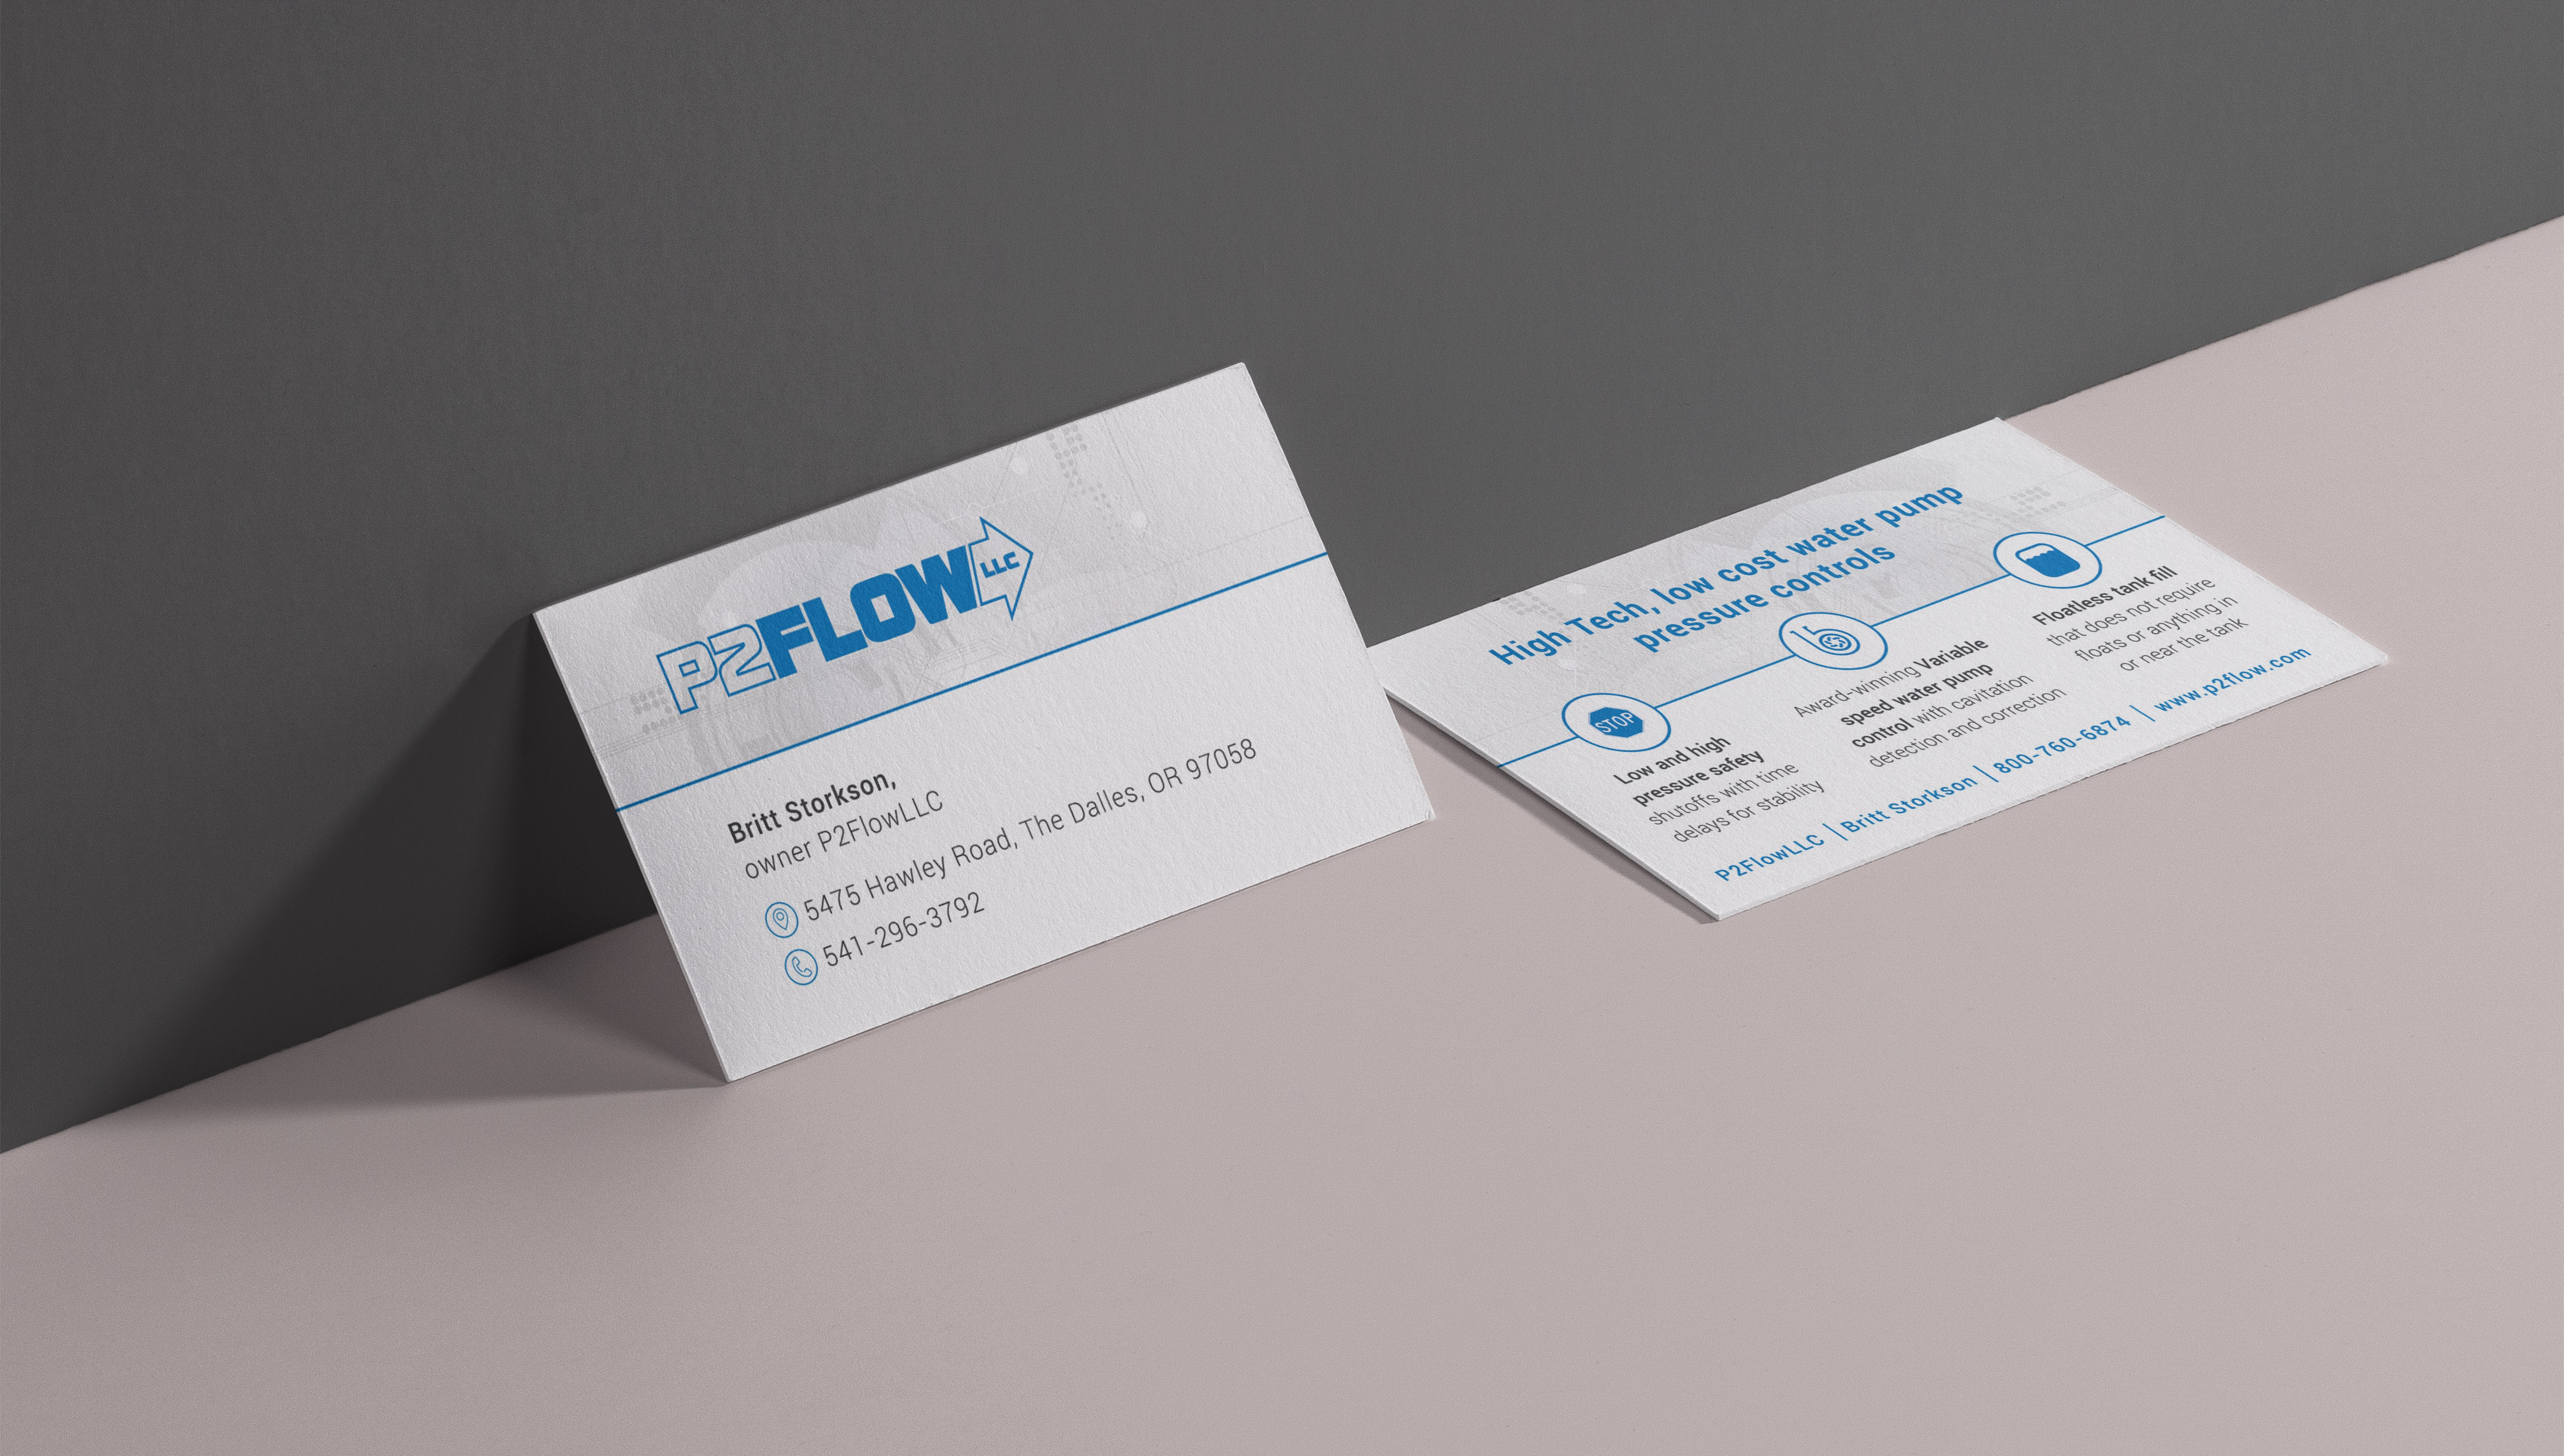 P2FlowLLC Business Card